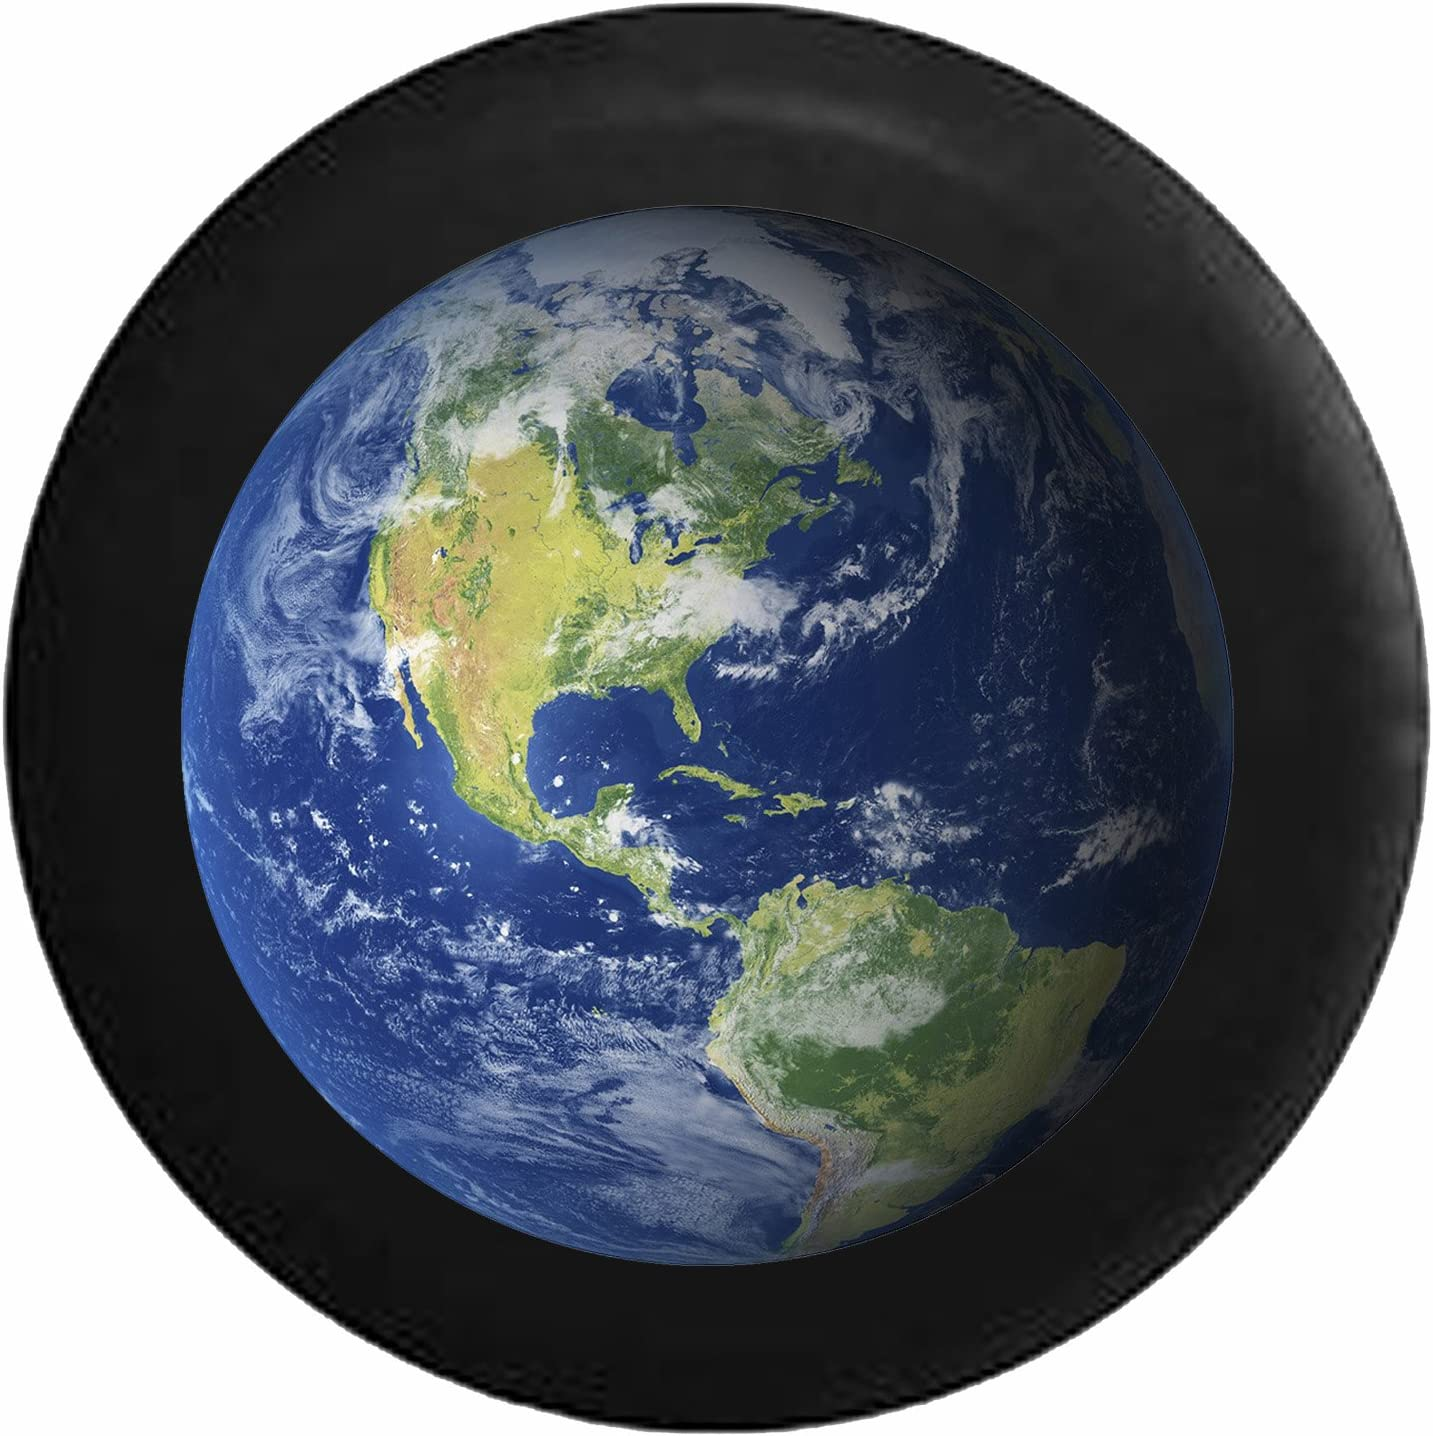 Pike Outdoors Full Color Earth View World Limited time cheap sale Space 2021 new - Spa Globe from